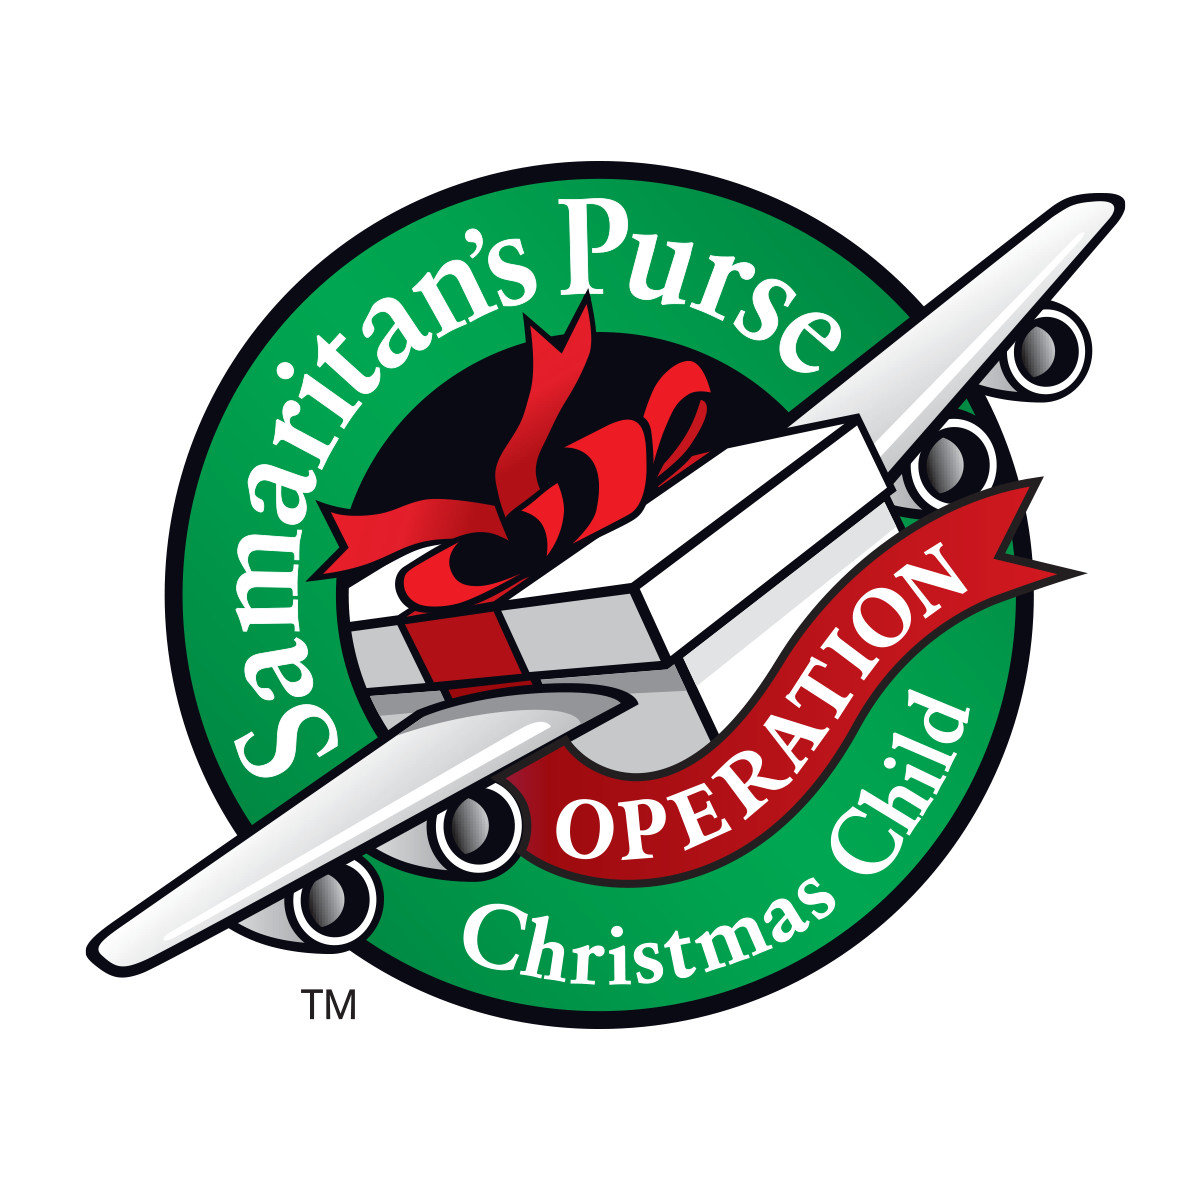 operation christmas child logo occ-logo-1200x1200